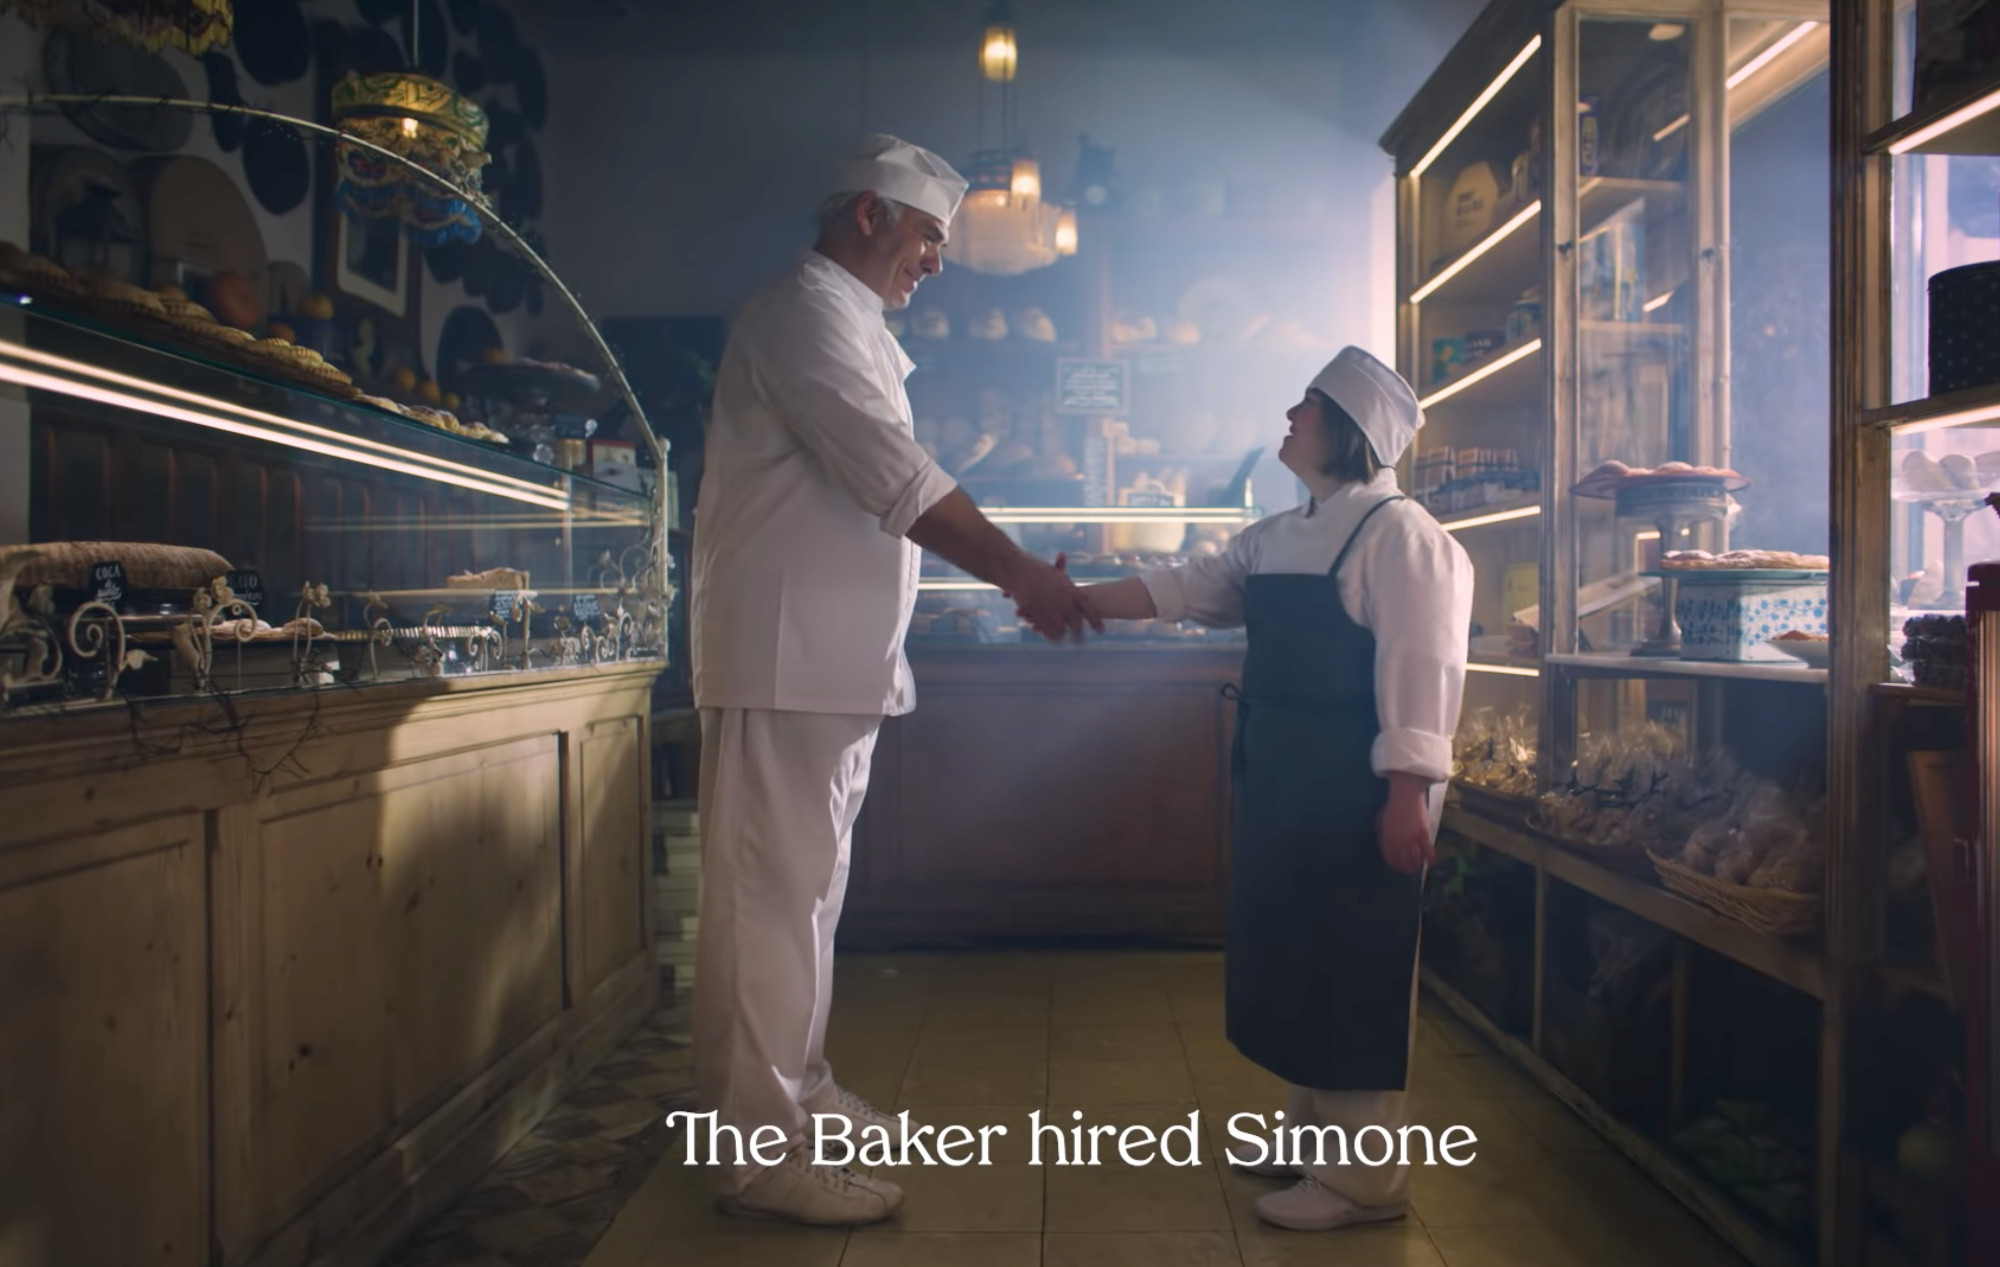 The Hiring Chain - the Baker hired Simone